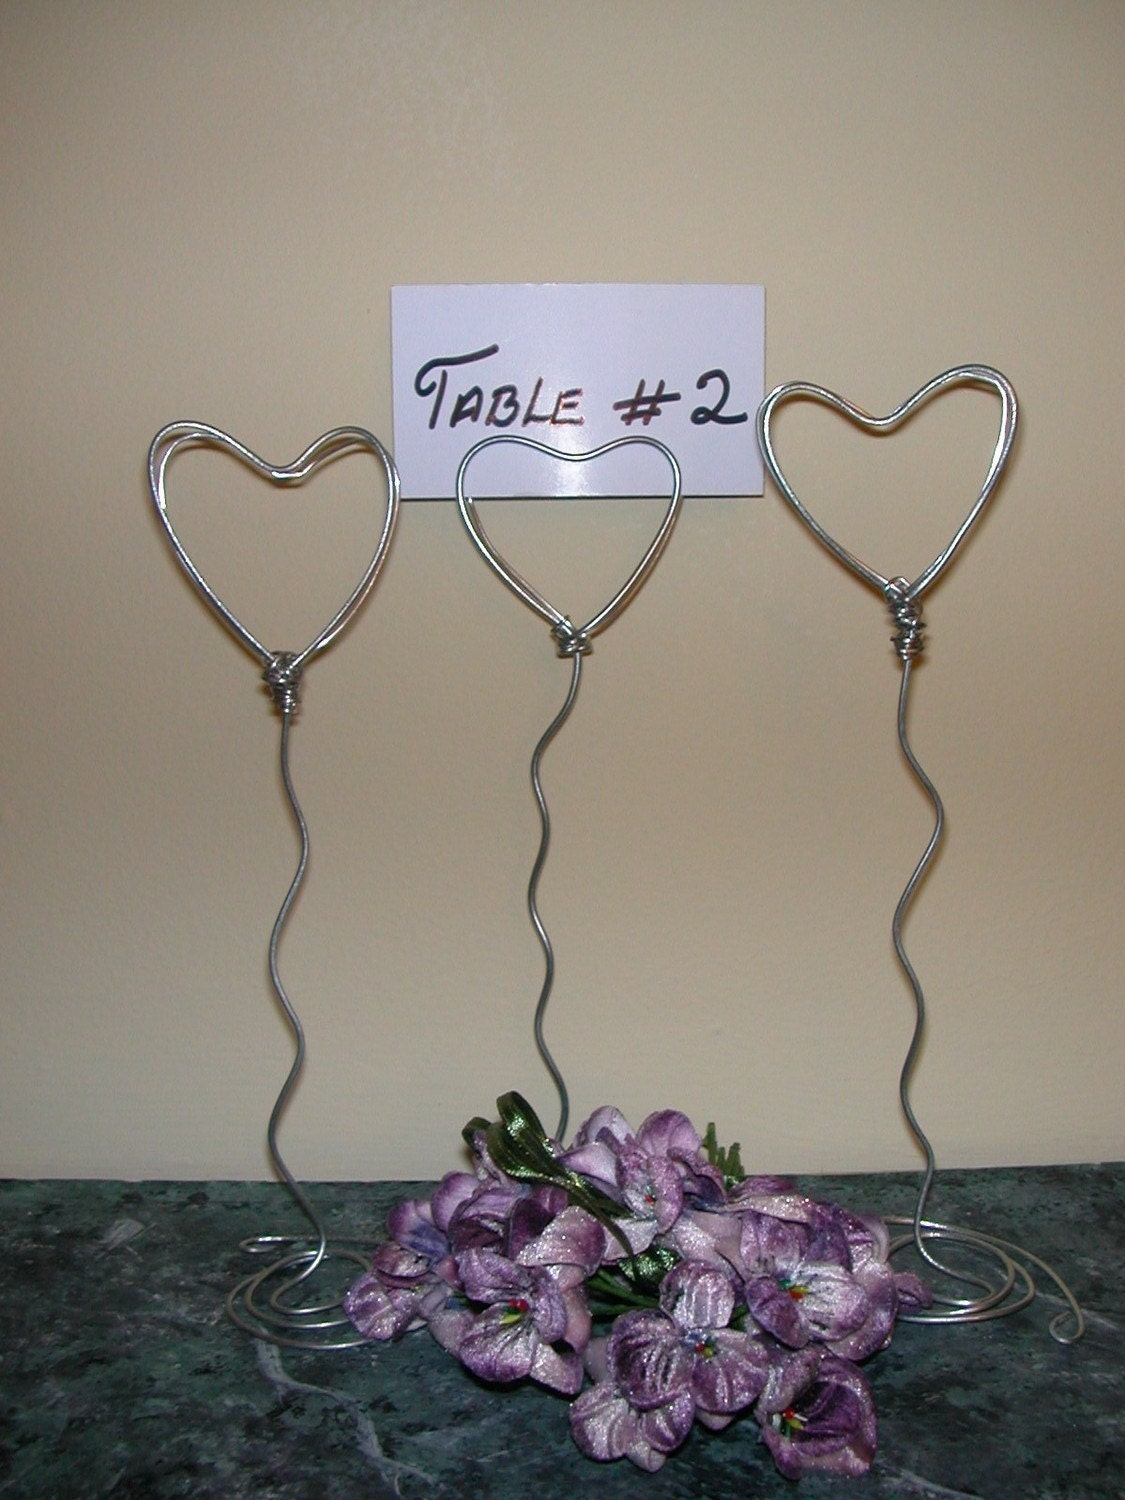 10 Table number Card Holders/ Menu / Place Card holder  - 7 inch / Valentine (SILVER WIRE HEARTS)